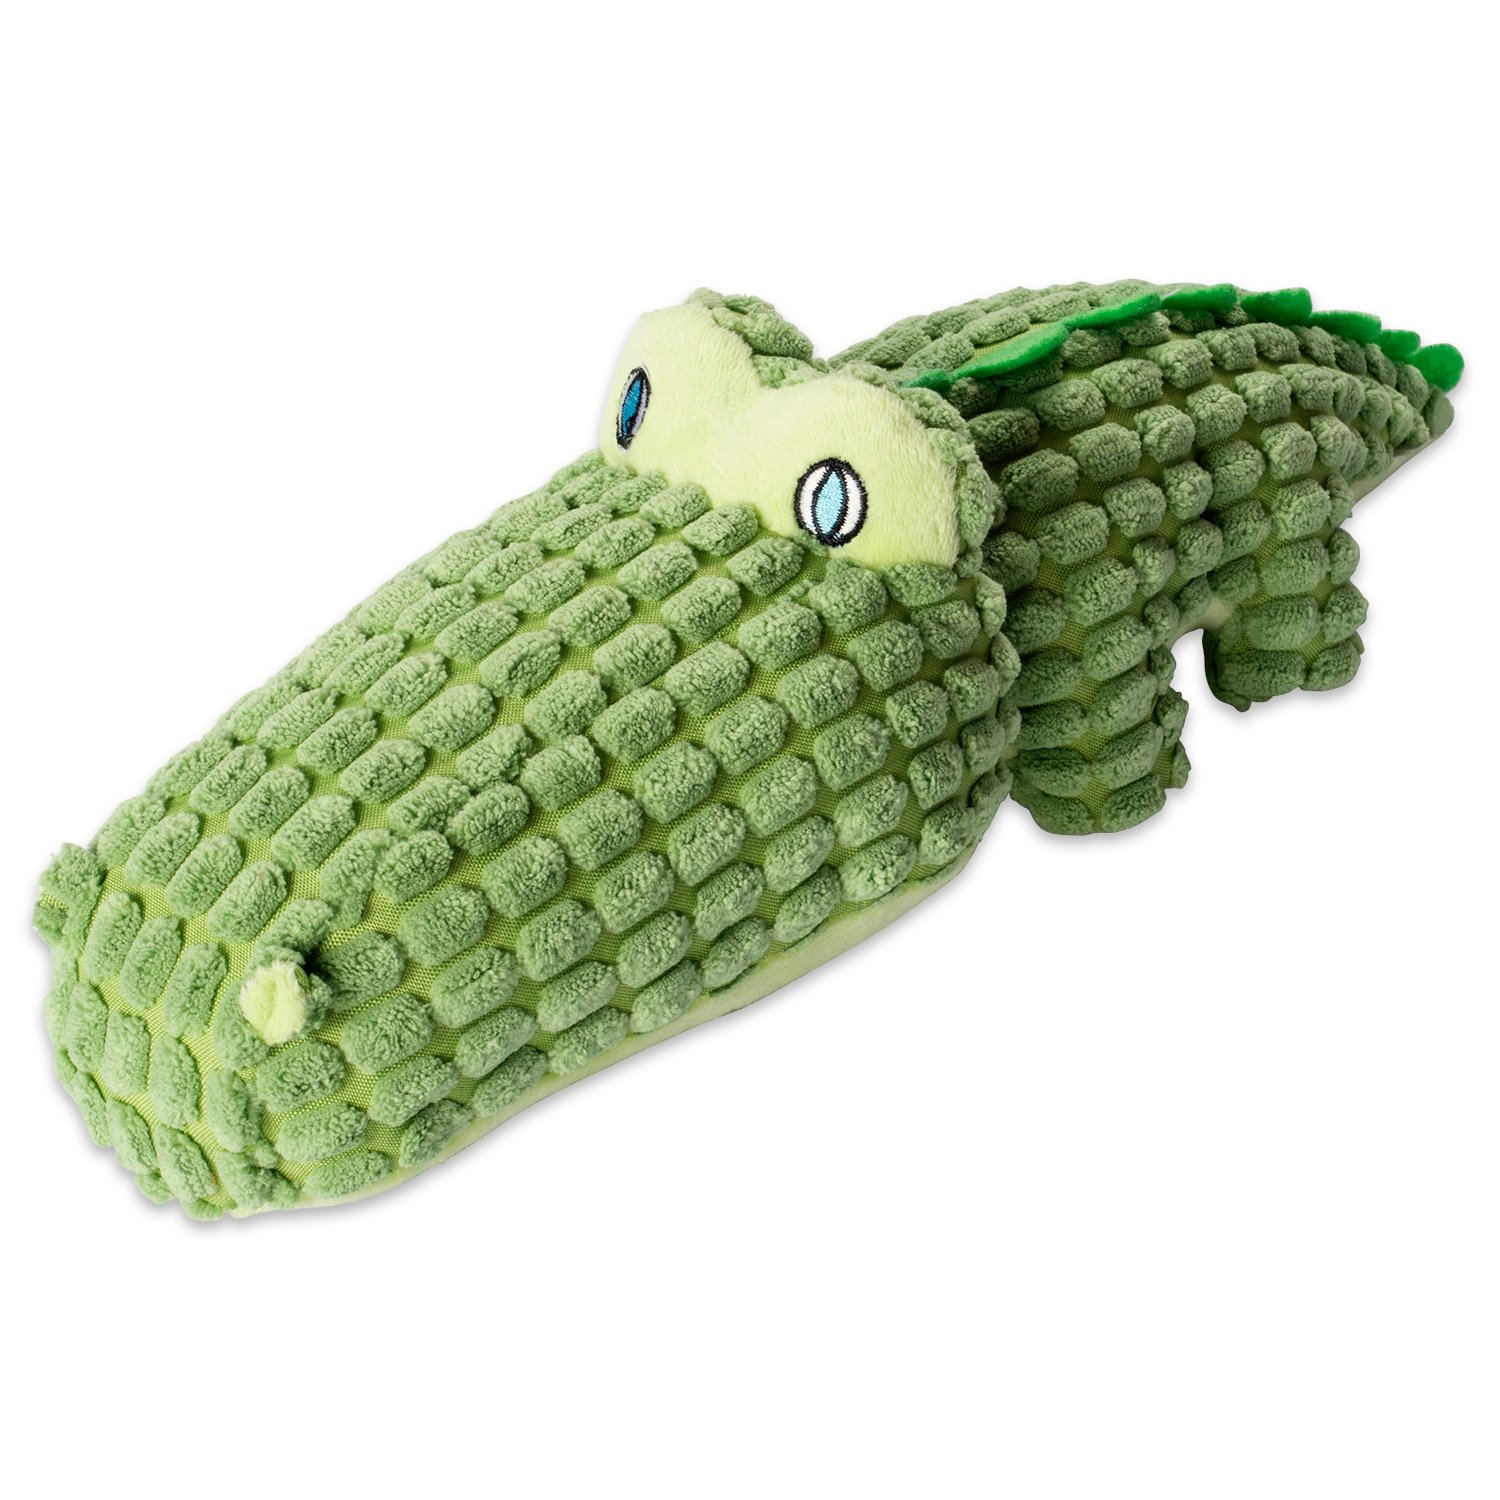 DII Bone Dry Jungle Friends Squeaking Dog Toy, 1 Piece Sam Alligator Plush Pet Toy for Small, Medium and Large Dogs